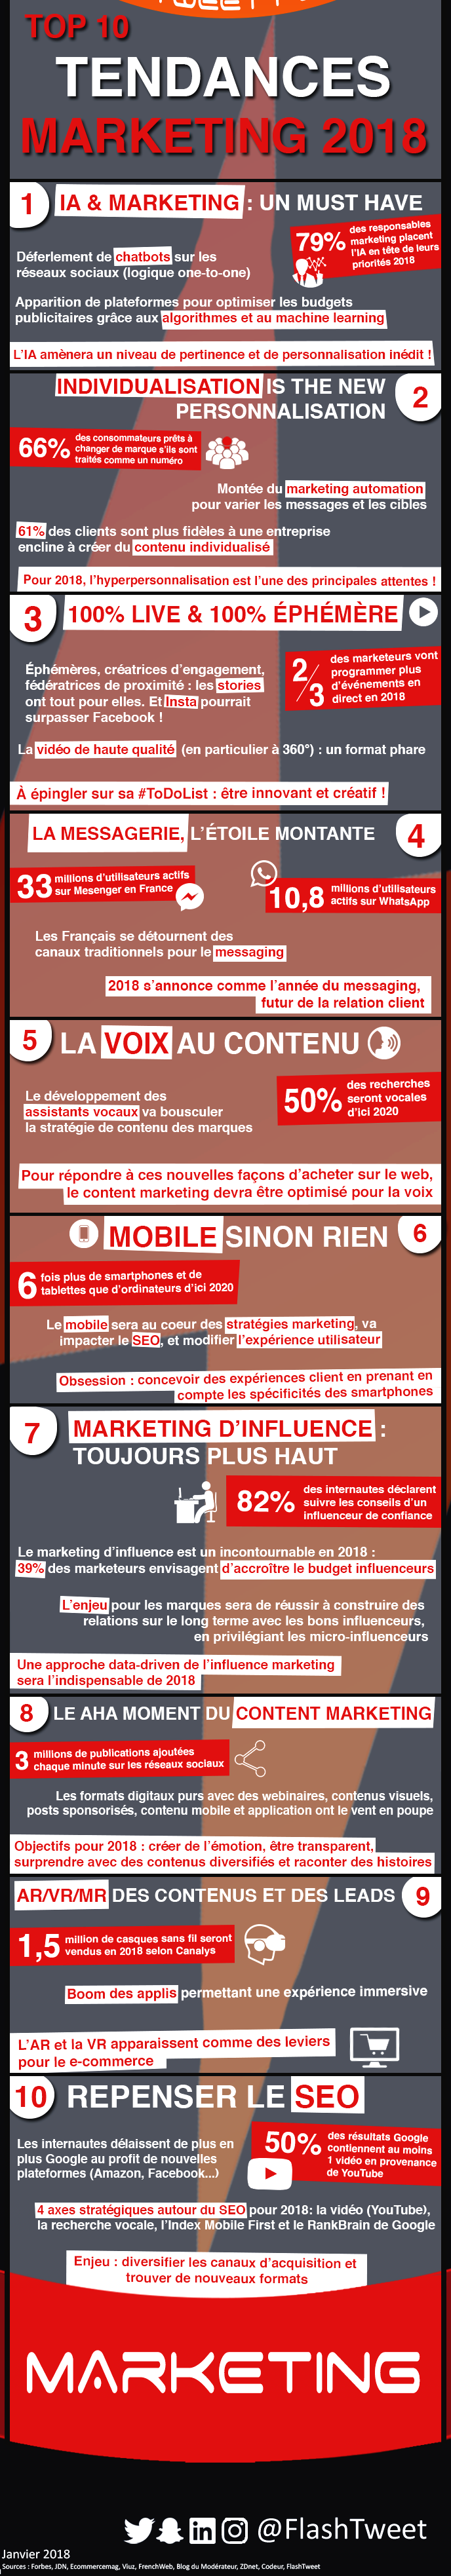 plan de marketing top tendances 2018